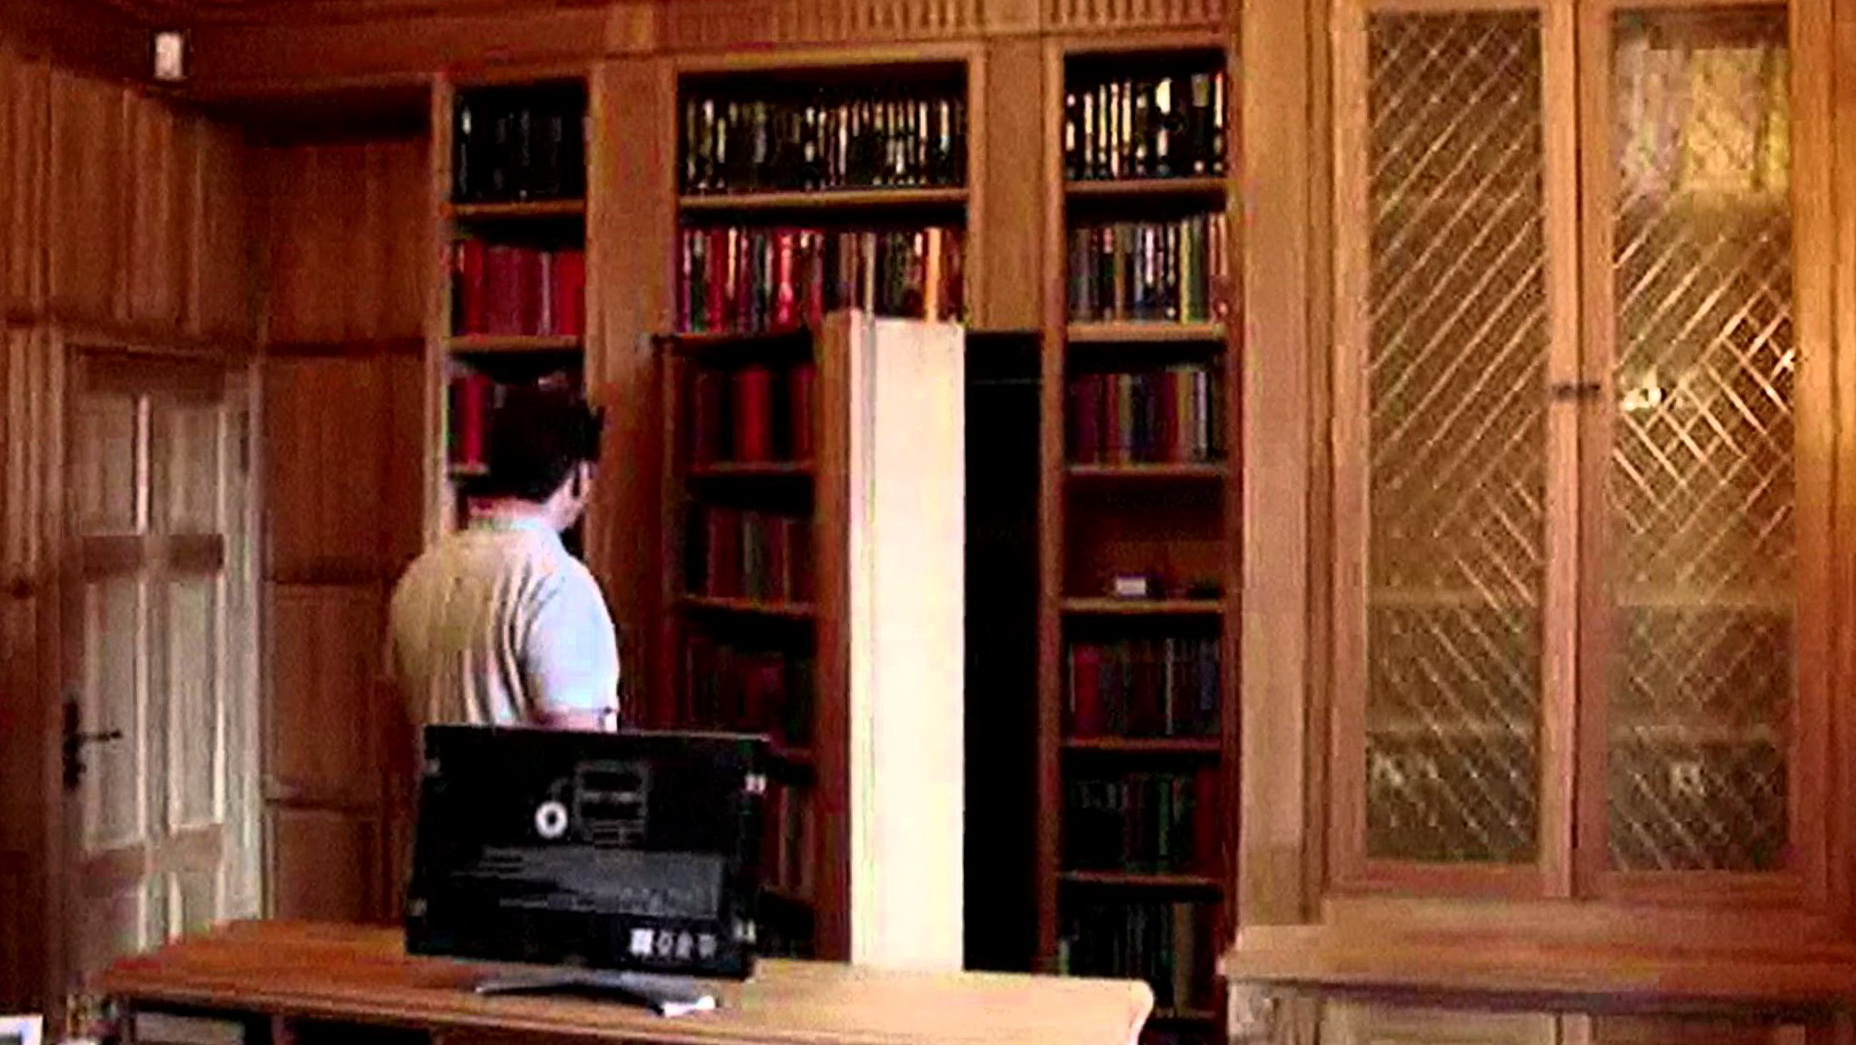 symbianology downloadable pdf diy hidden hardware bookcases s secret door plans info outswing bookcase kit free